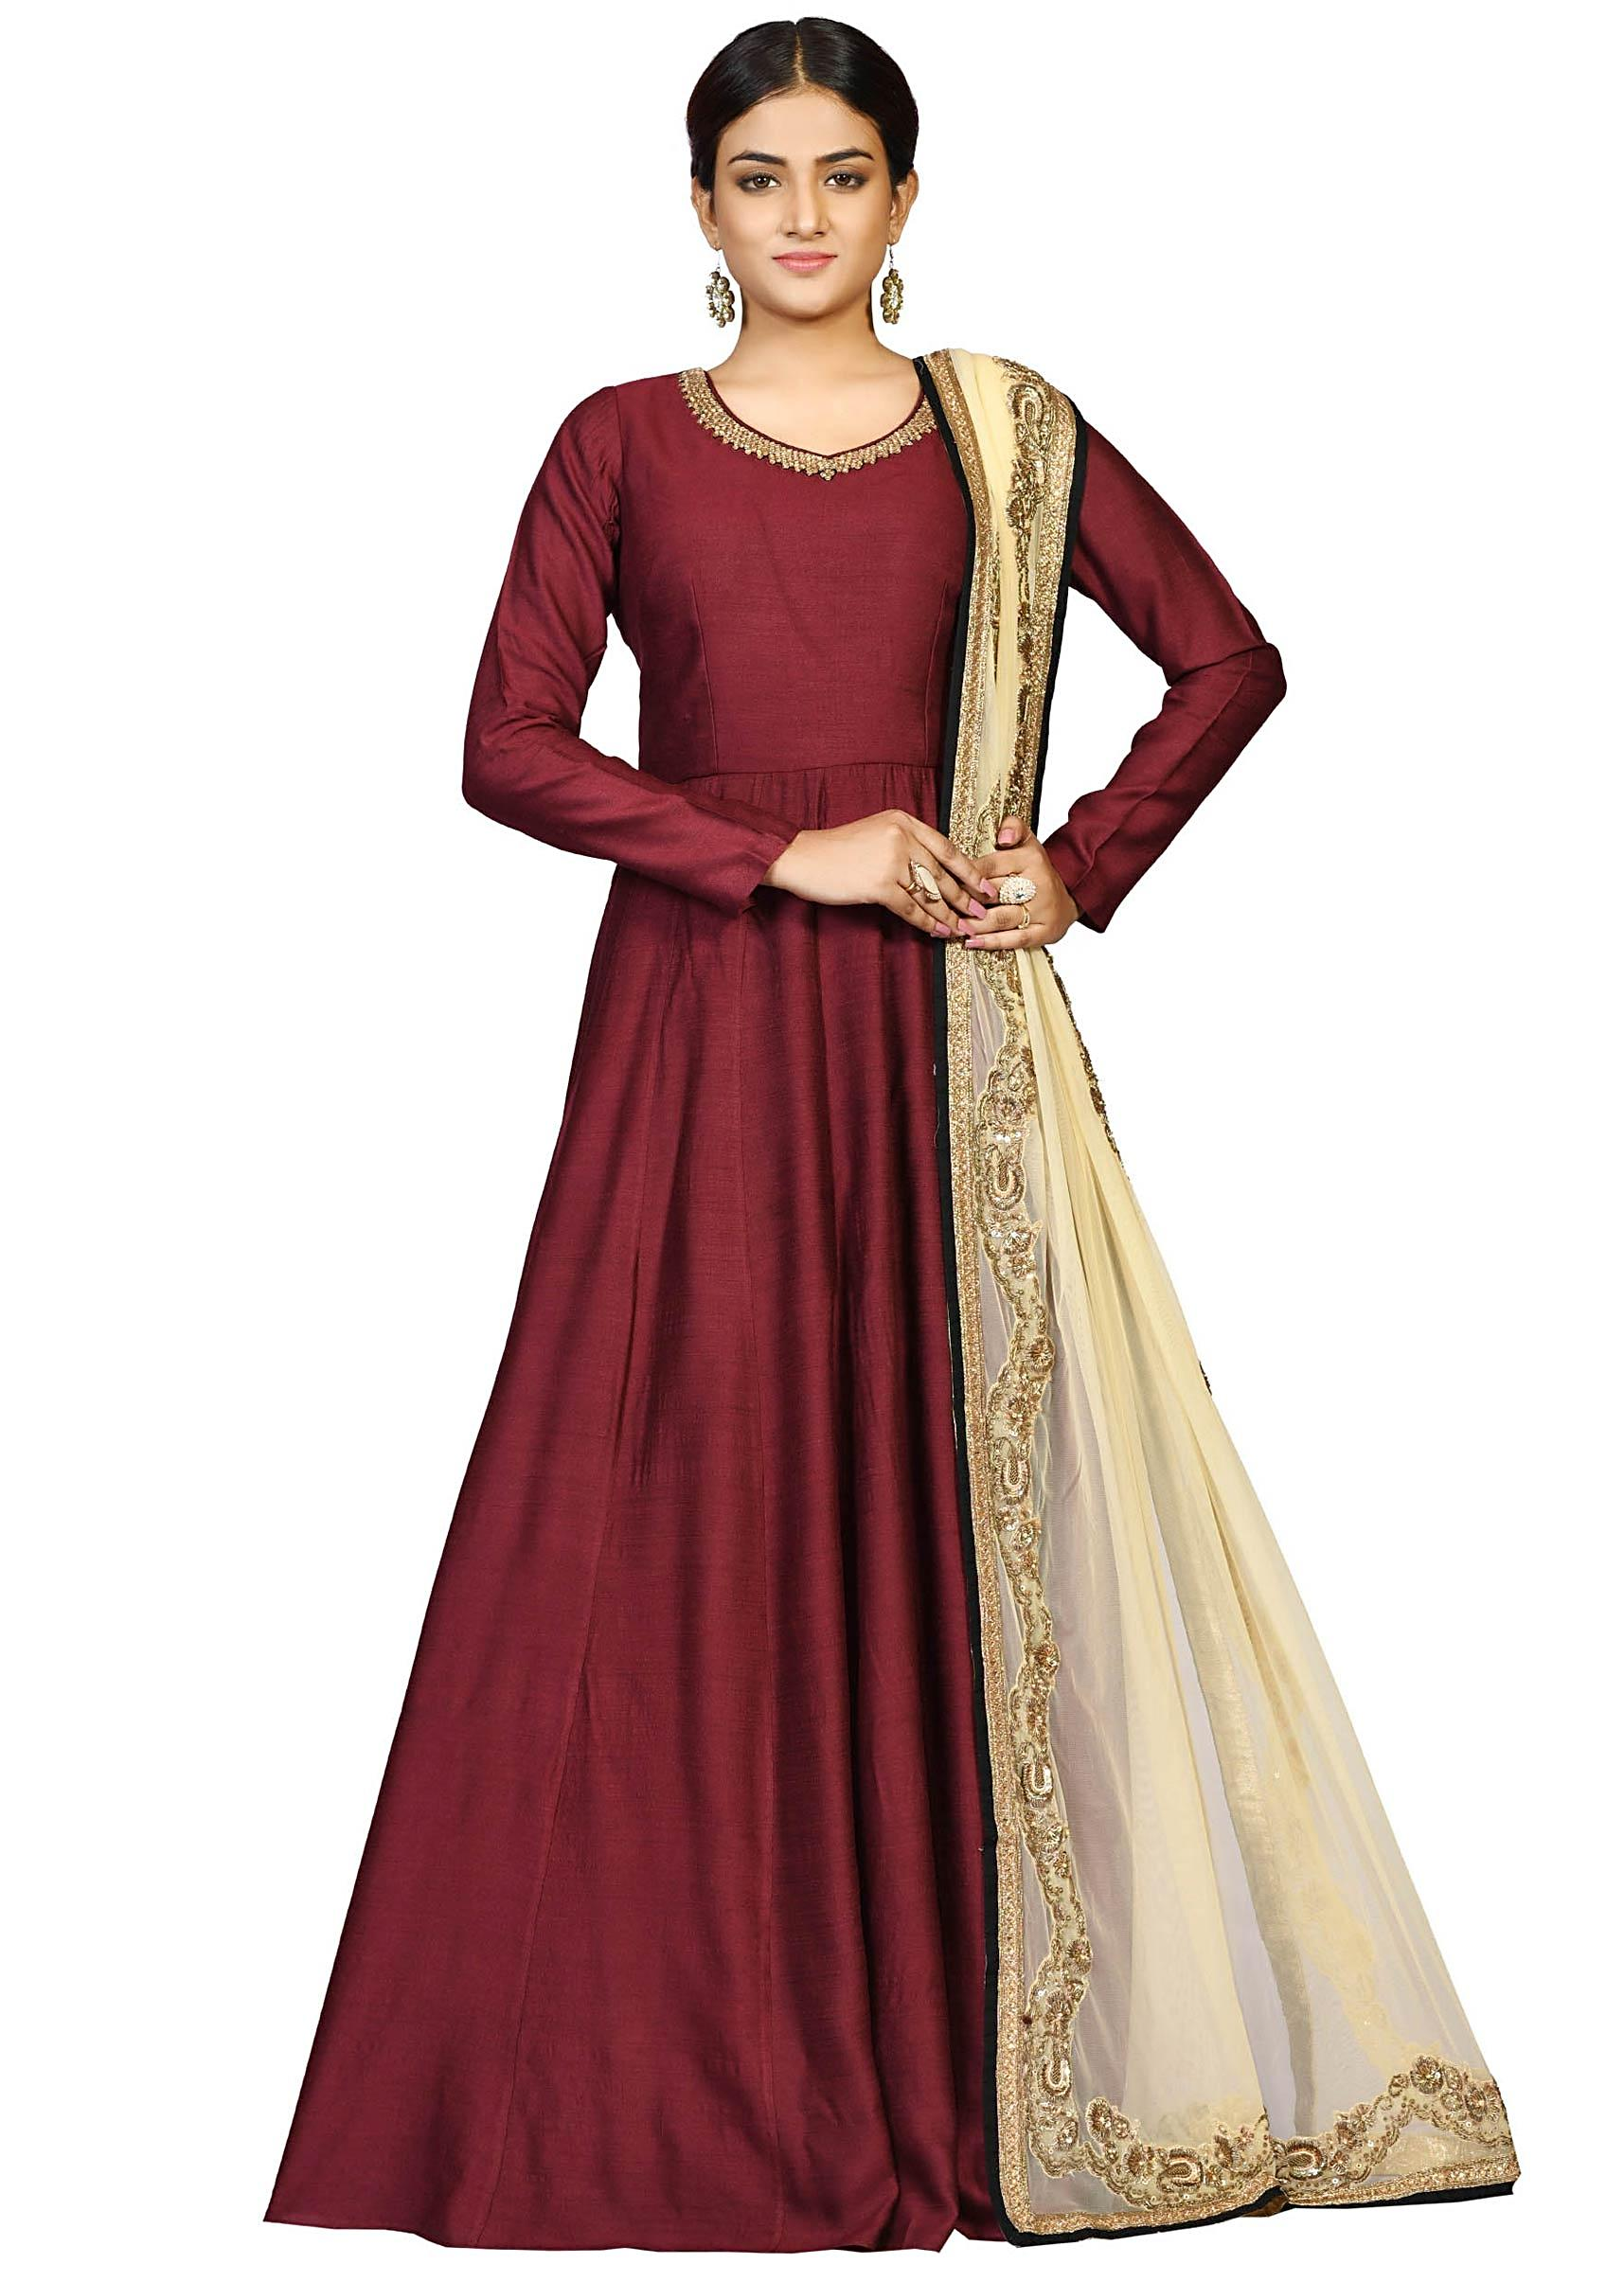 Brown Chanderi Suit With Heavy Dupatta Featuring The Zari